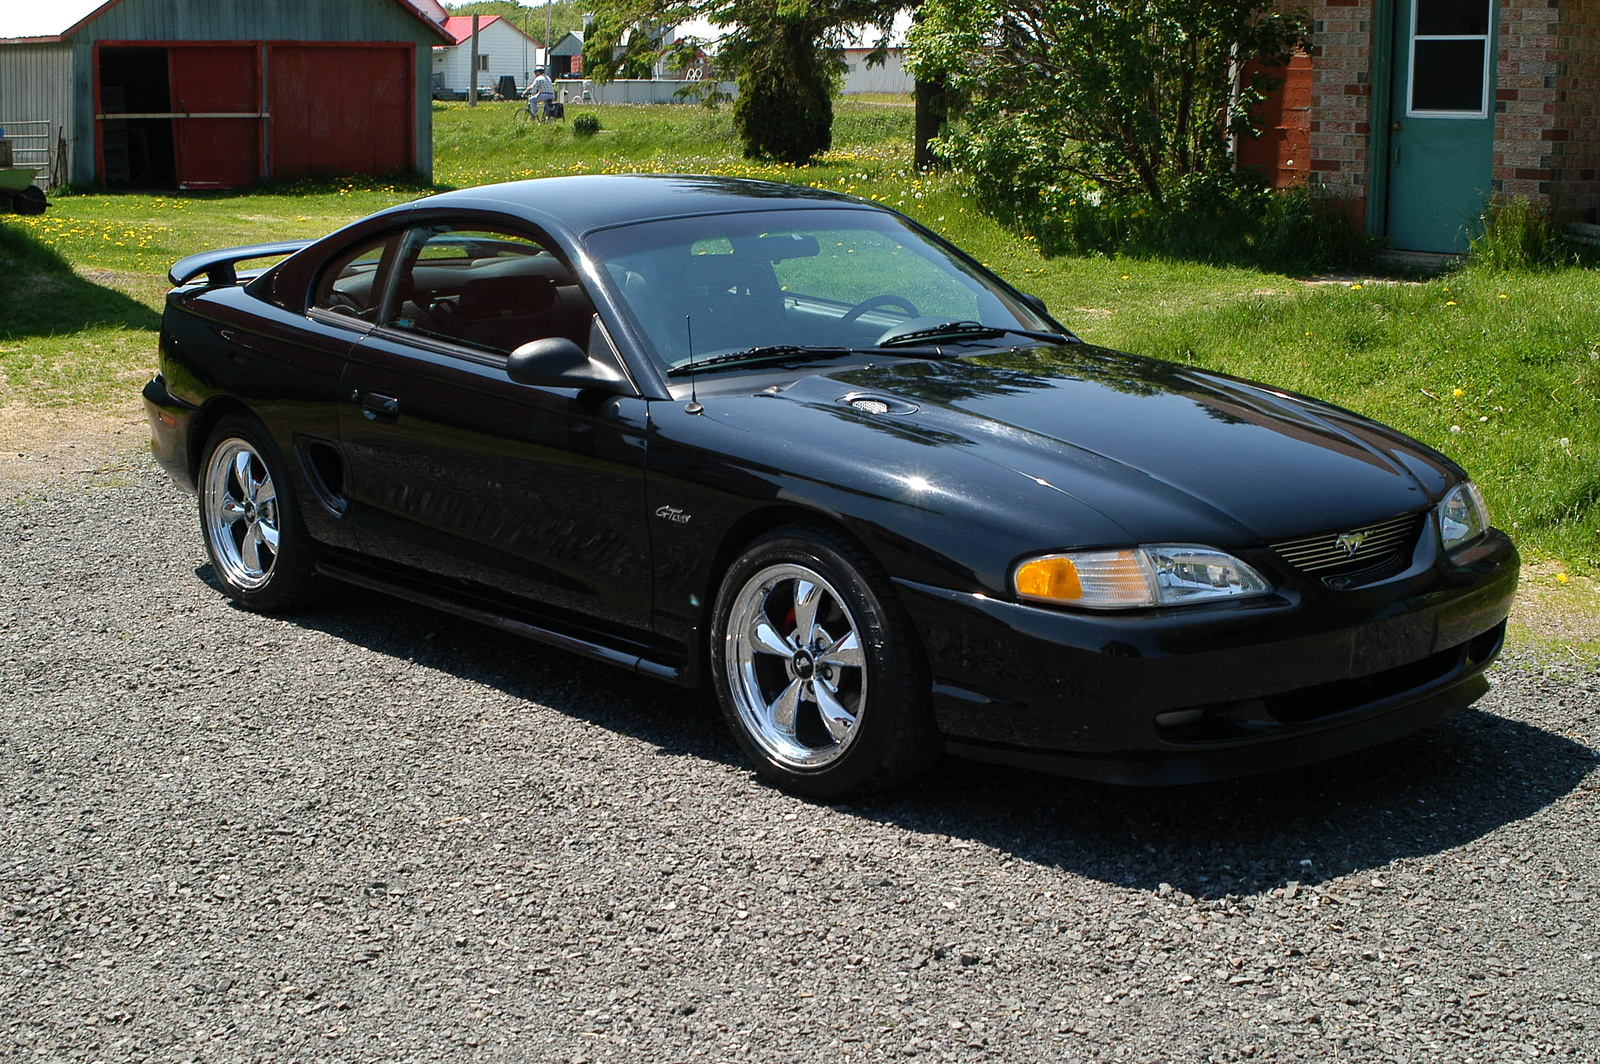 1998 ford mustang coupe vin number search autodetective